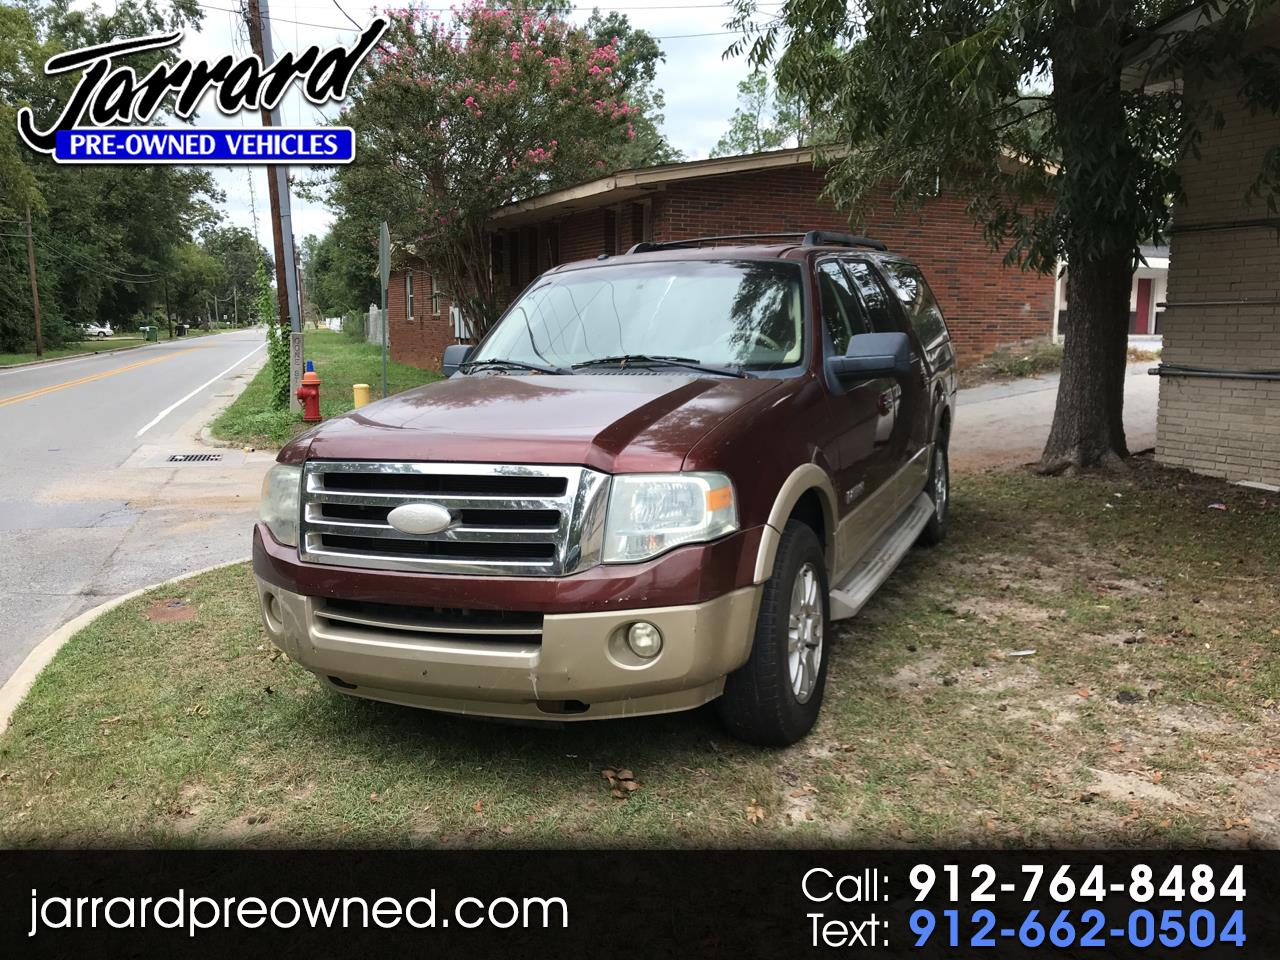 2007 Ford Expedition EL 2WD 4dr Eddie Bauer